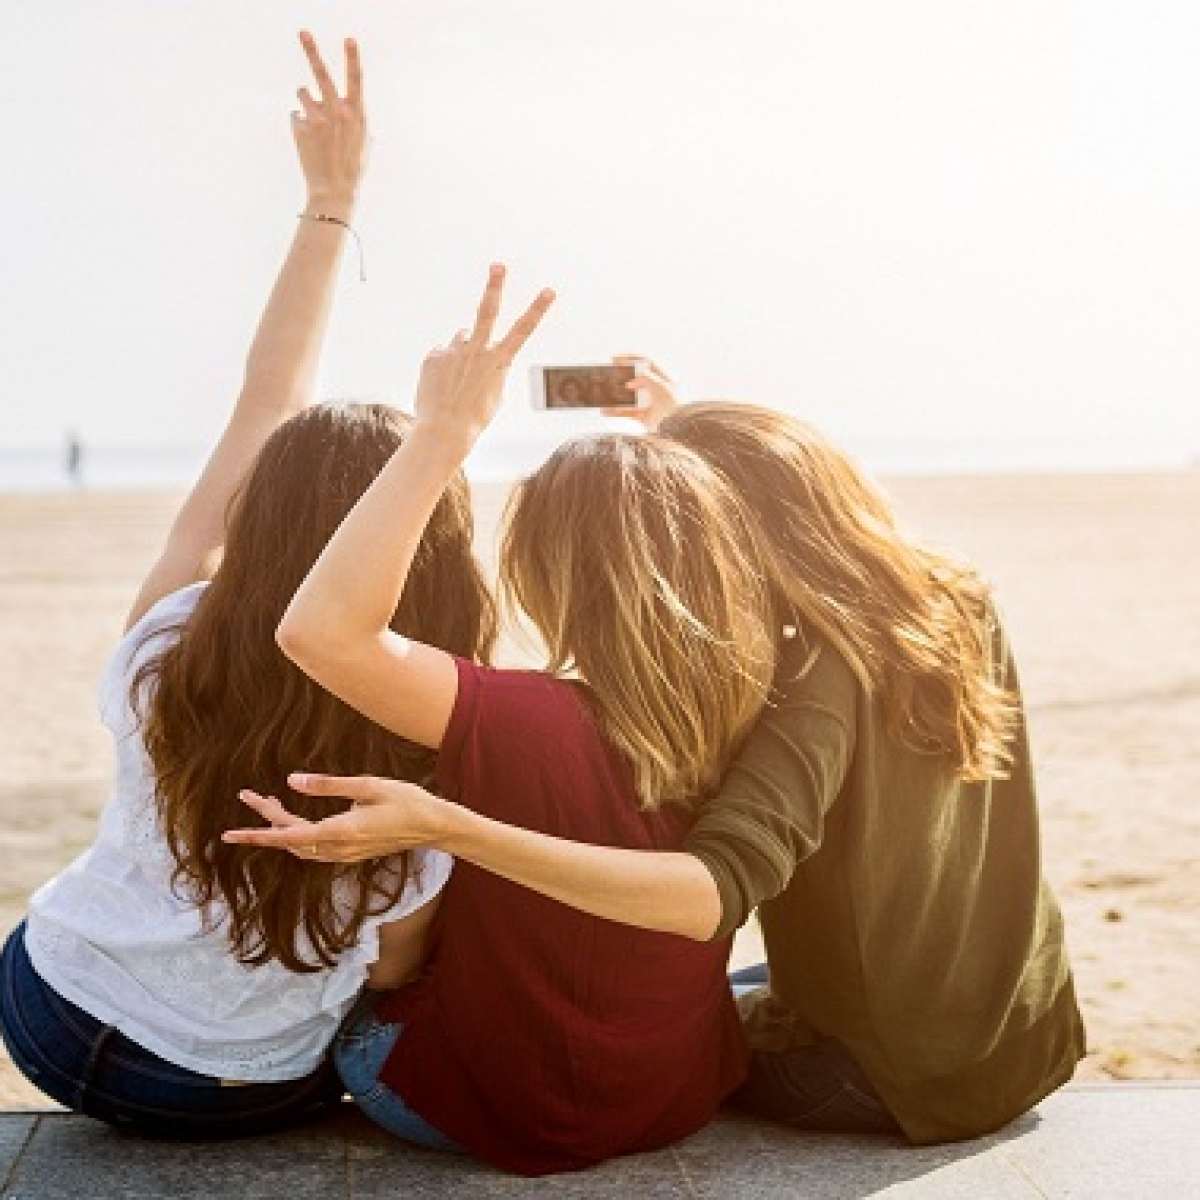 Friendship Day 2020: Locked down for now, friends for life